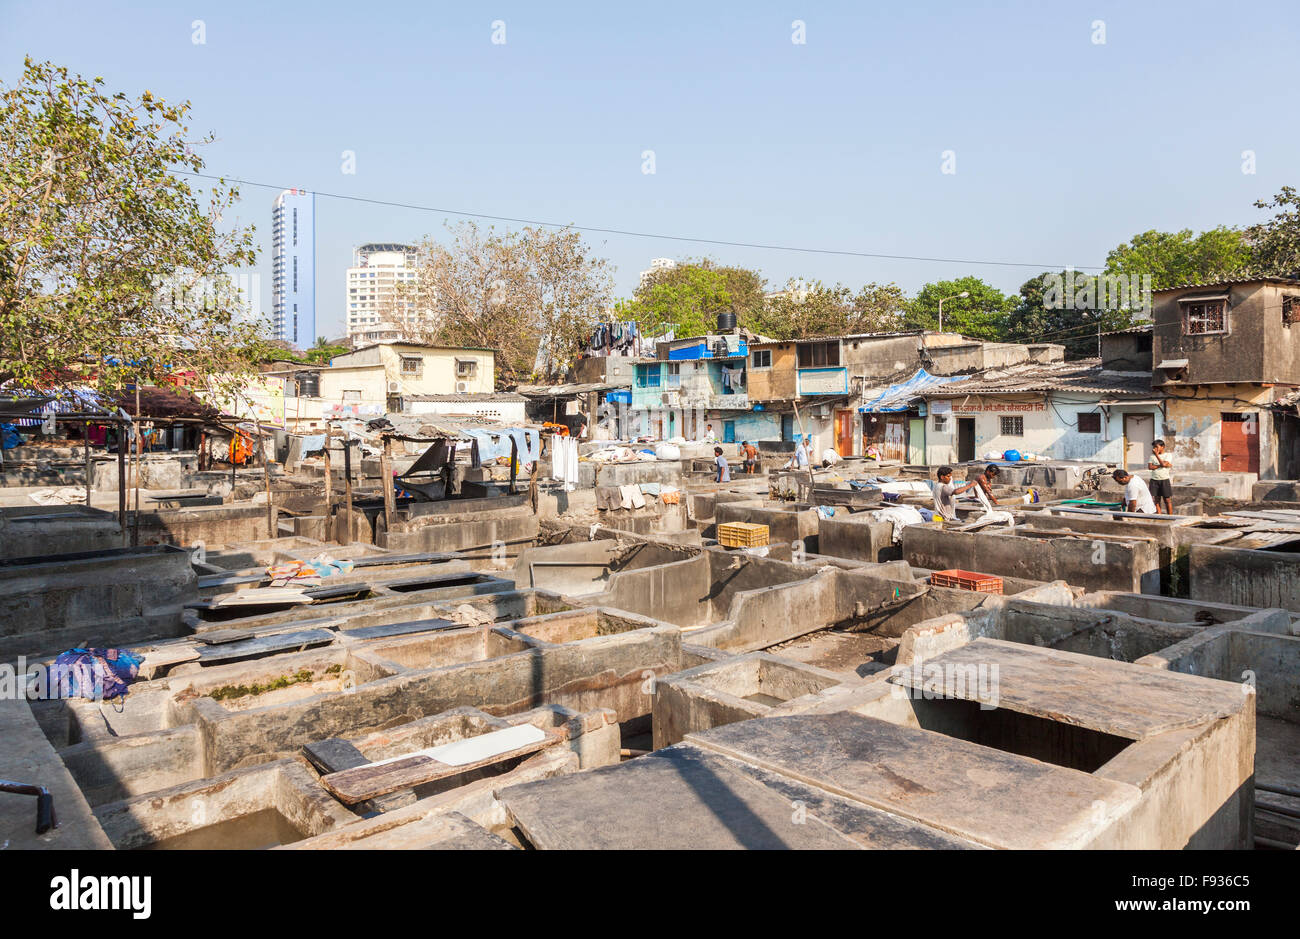 Dhobi Ghat, a well-known, large, open air laundromat in Mumbai, India on a sunny day with blue sky Stock Photo